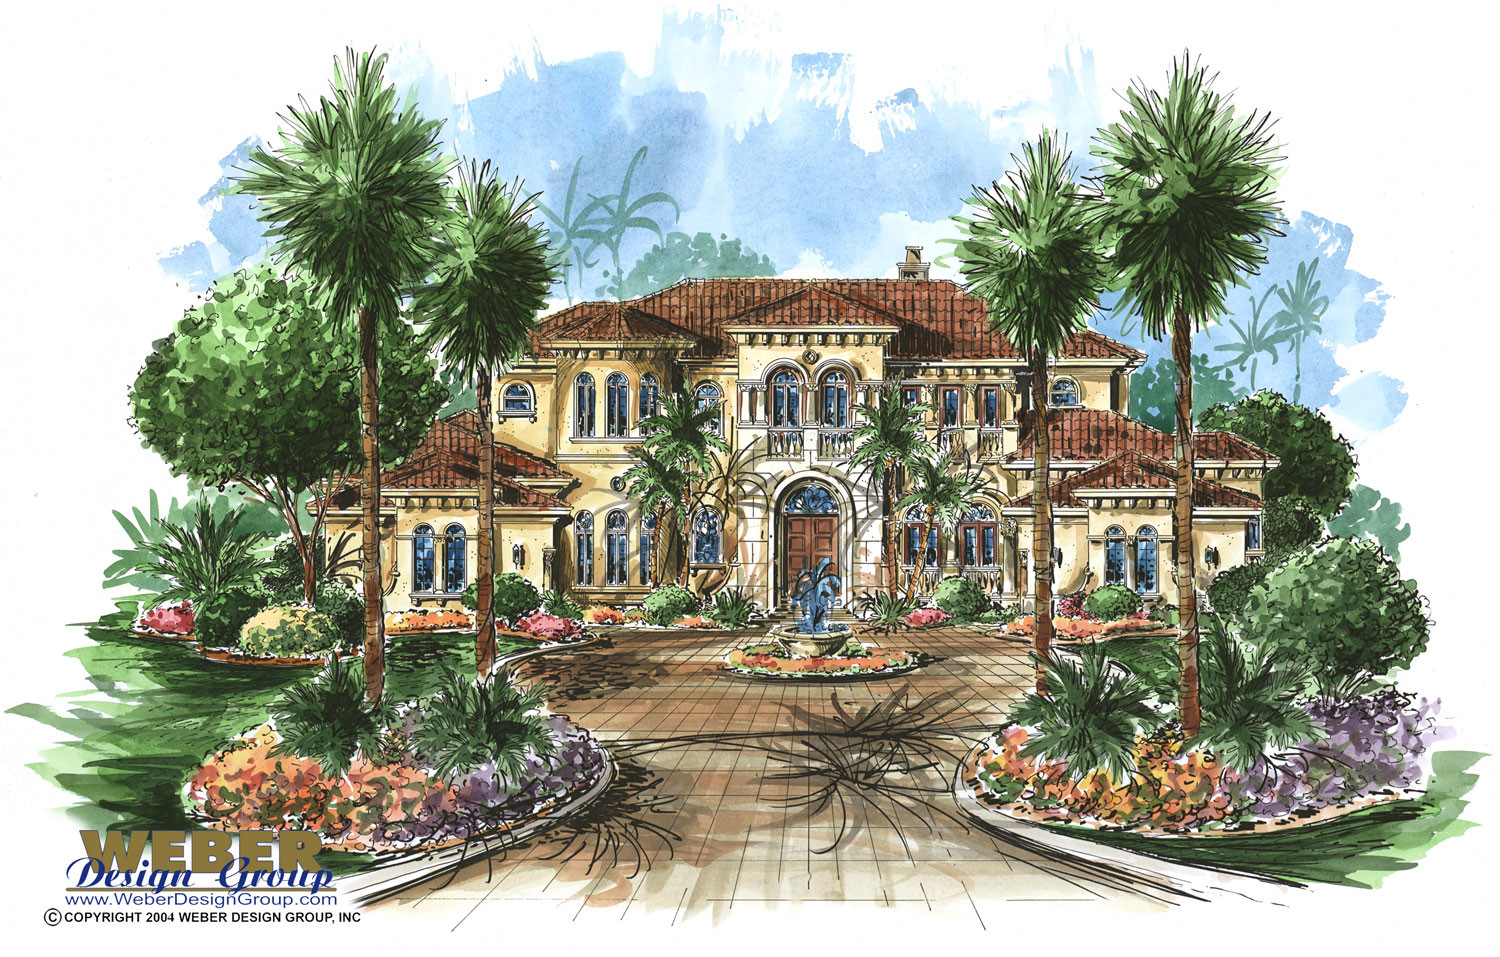 Southwestern House Plans  Weber Design Group Inc  Southwestern - Luxury home designs photos